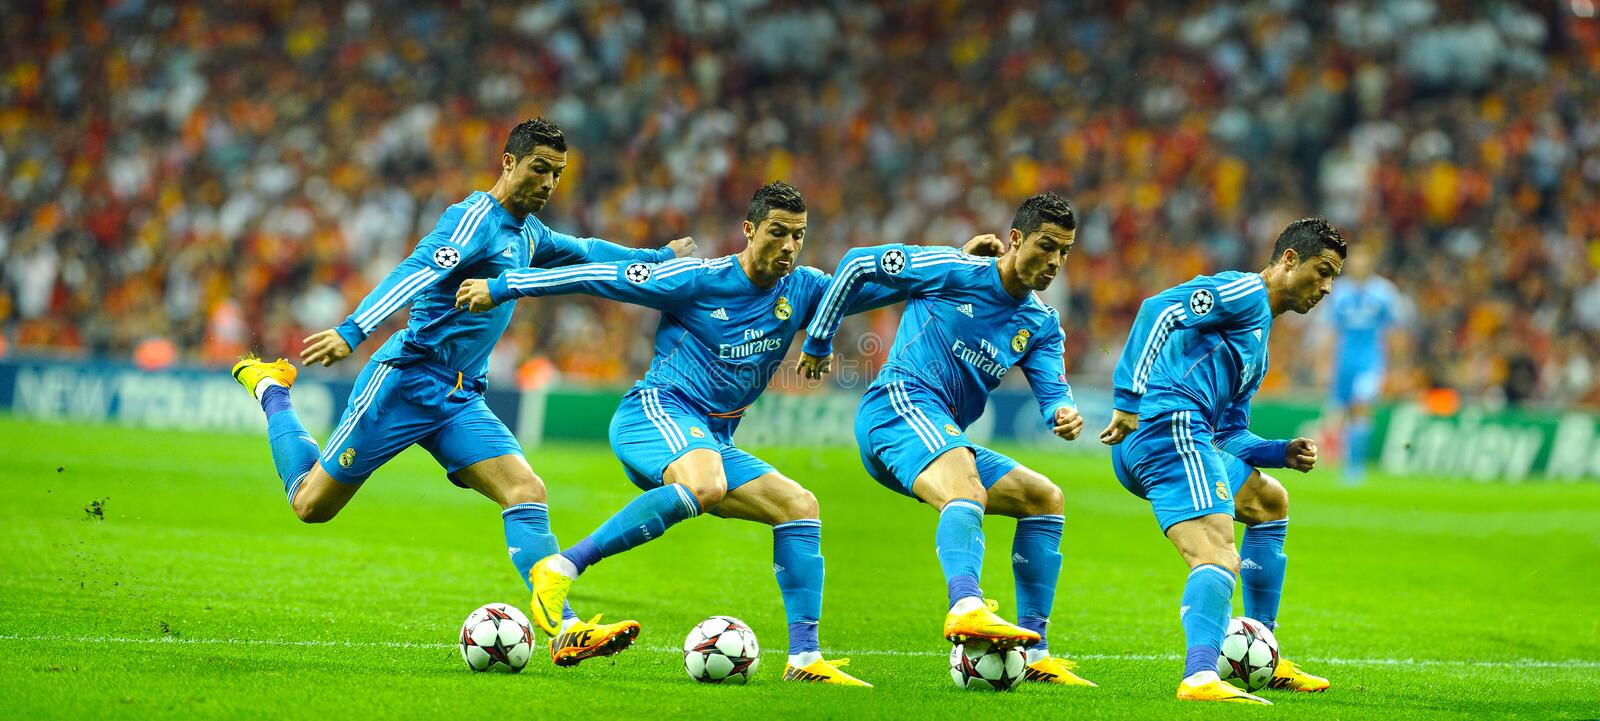 Cristiano Ronaldo dribbling in action. Real Madrids Cristiano Ronaldo dribbling during their Champions League Group B soccer match against Galatasaray at Turk royalty free stock photos